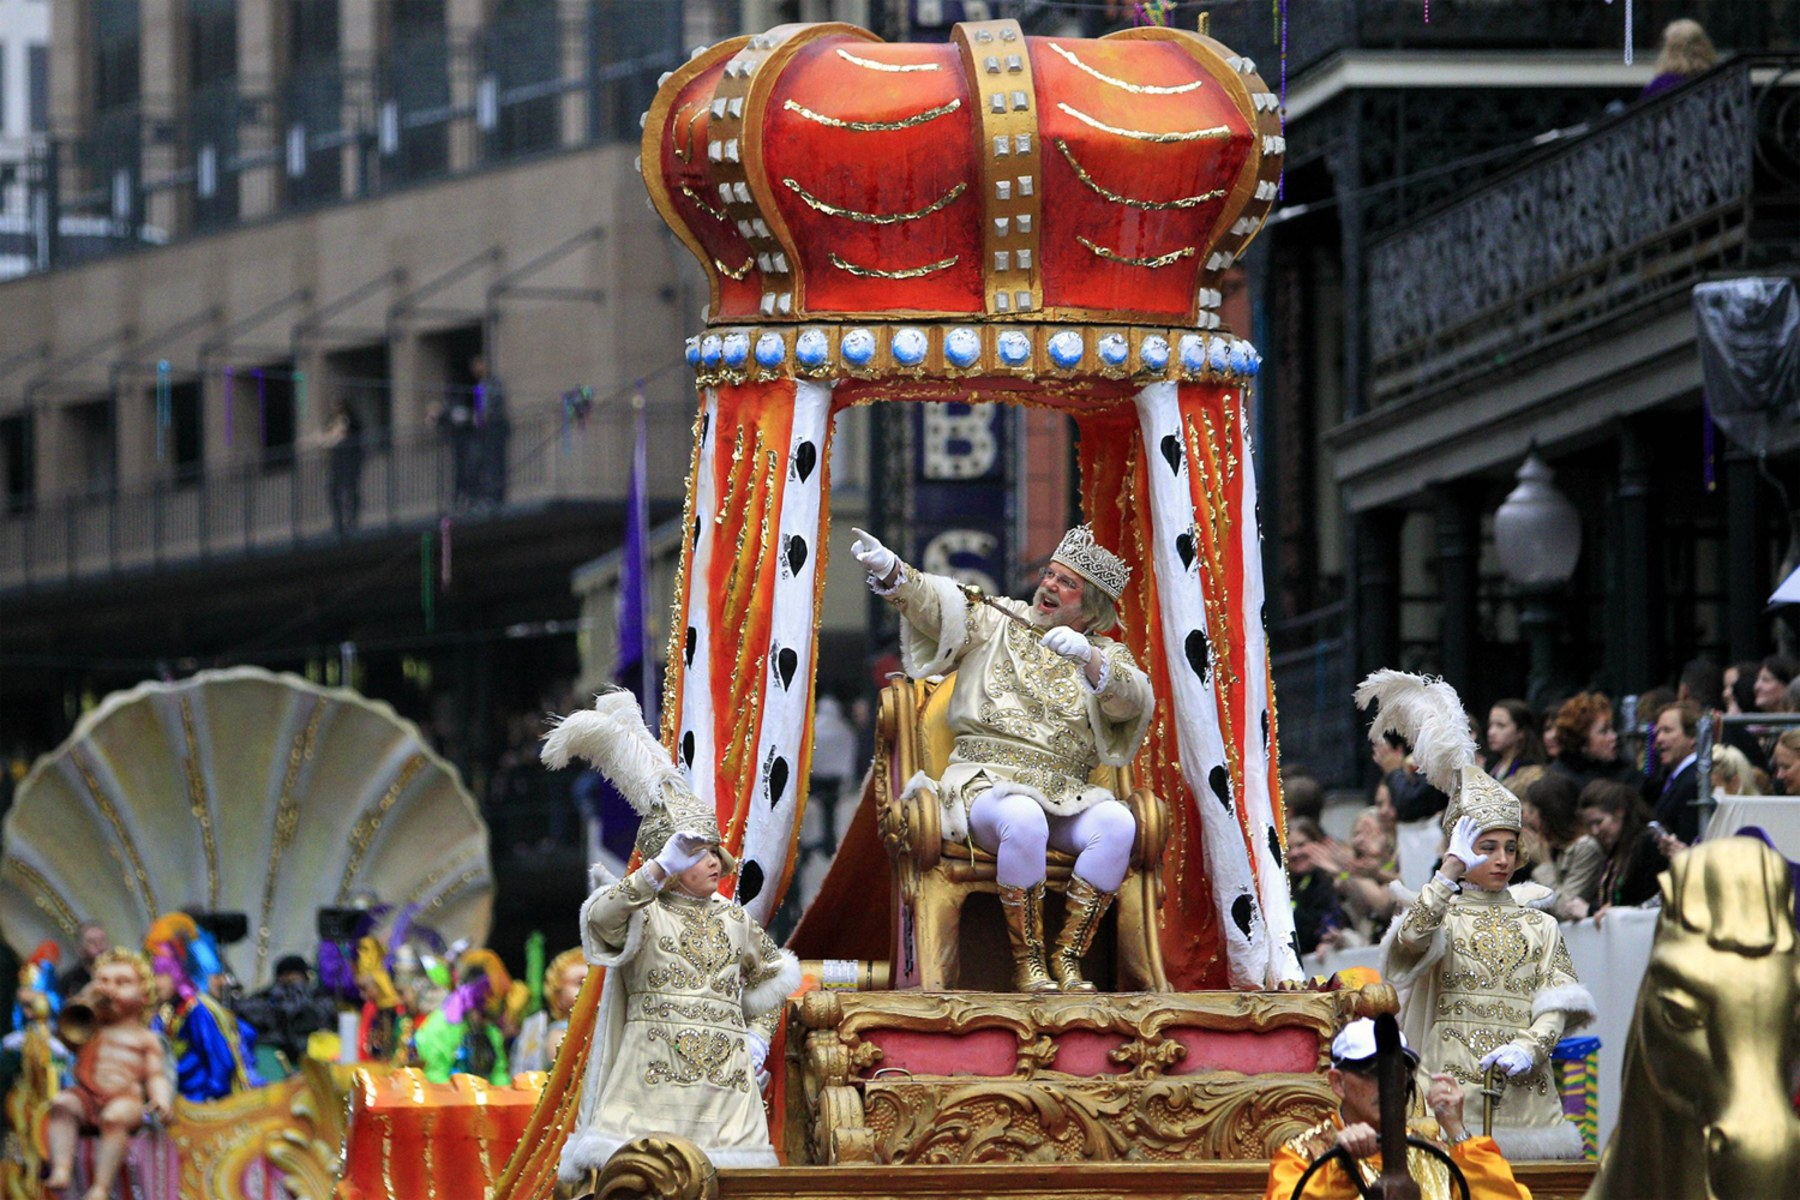 Image: Rex, King of Carnival waves to his subjects as he parades down St. Charles Avenue on Mardi Gras Day in New Orleans